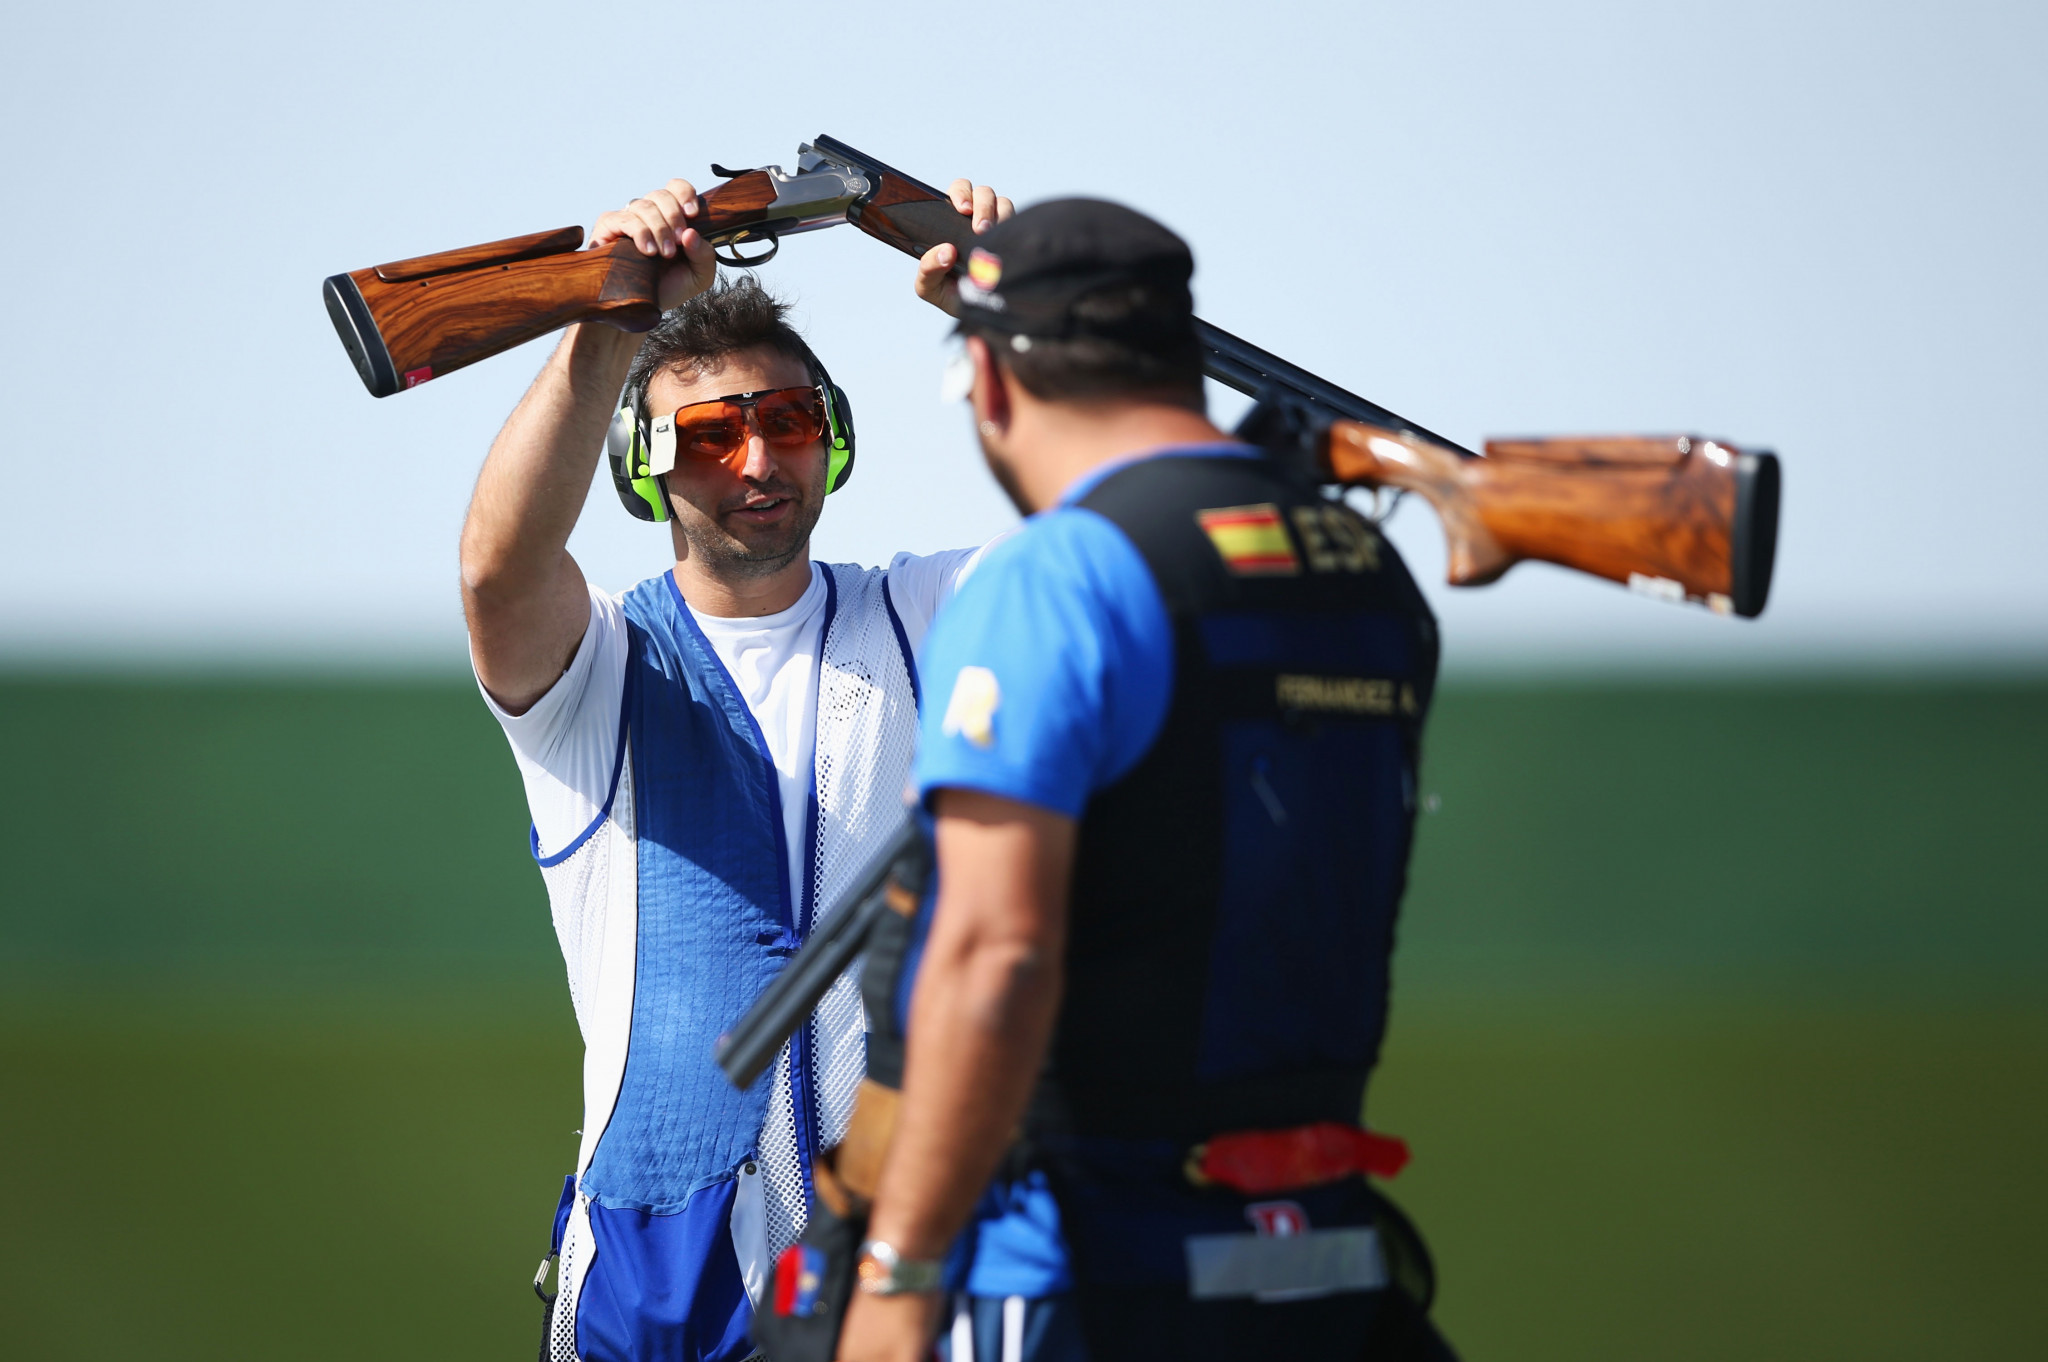 Spain and Russia impress in trap qualifiers at ISSF World Cup in Cairo